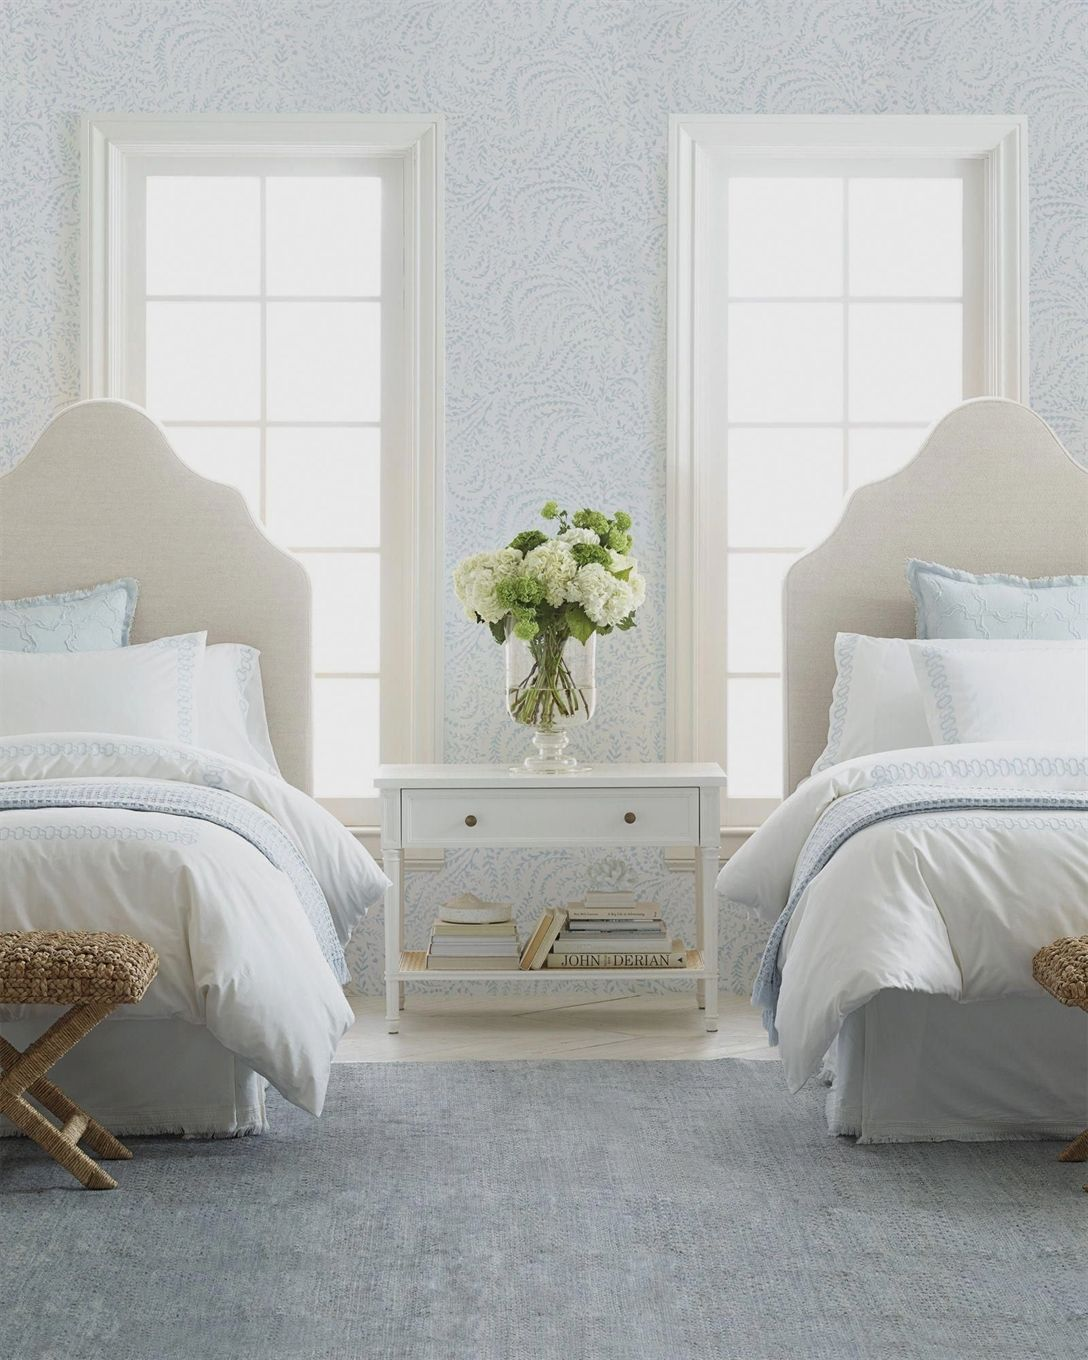 Priano Wallpaper Serena & Lily bedroomdecoration